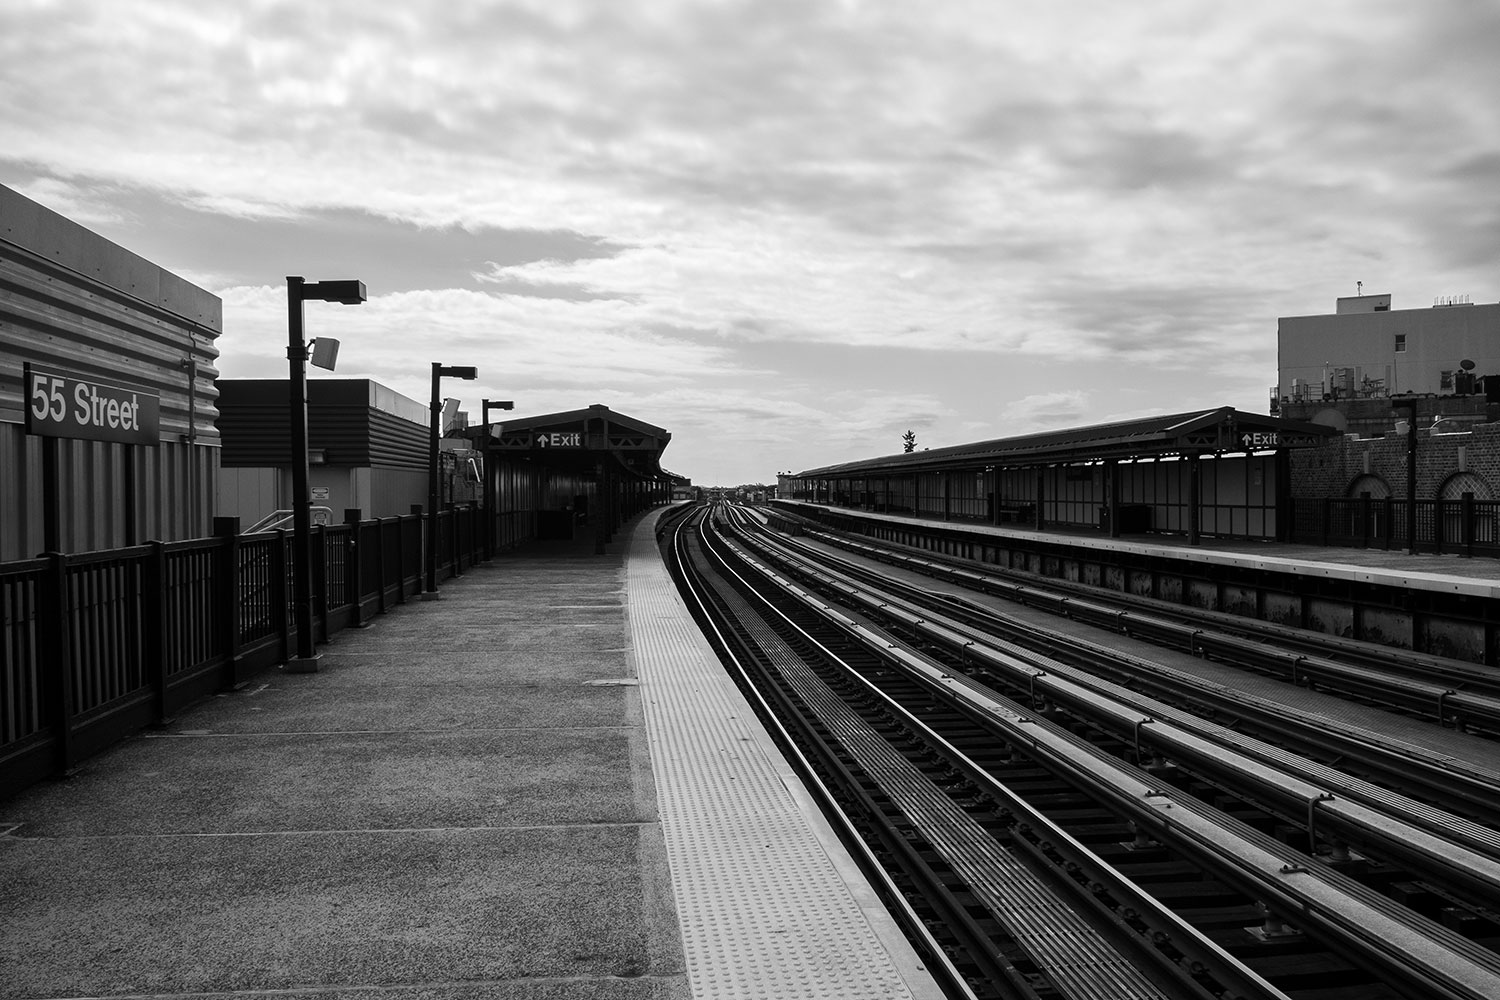 55th Street train station in Brooklyn